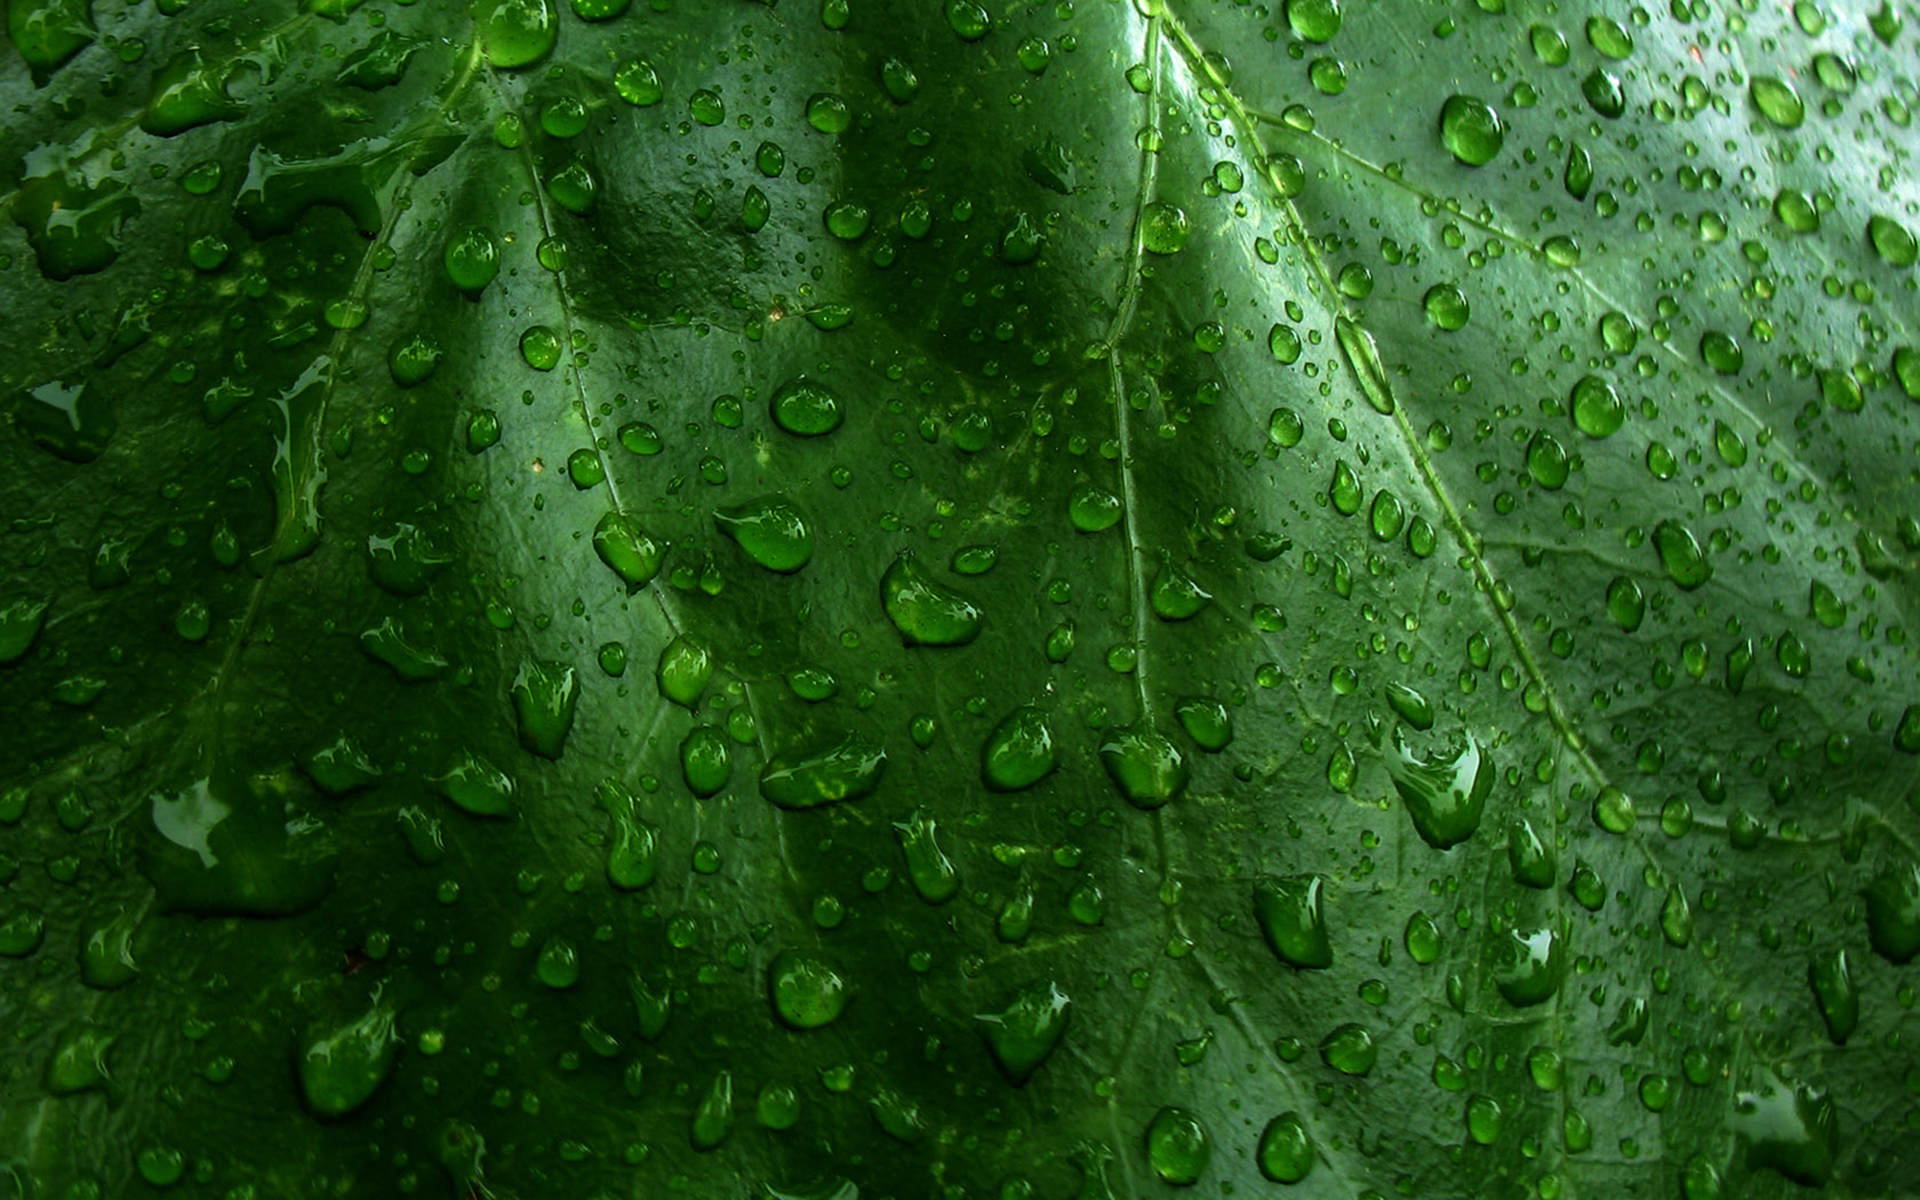 Earth - Water Drop  - Green Leaf - Raindrops - Ribs - Plant Wallpaper